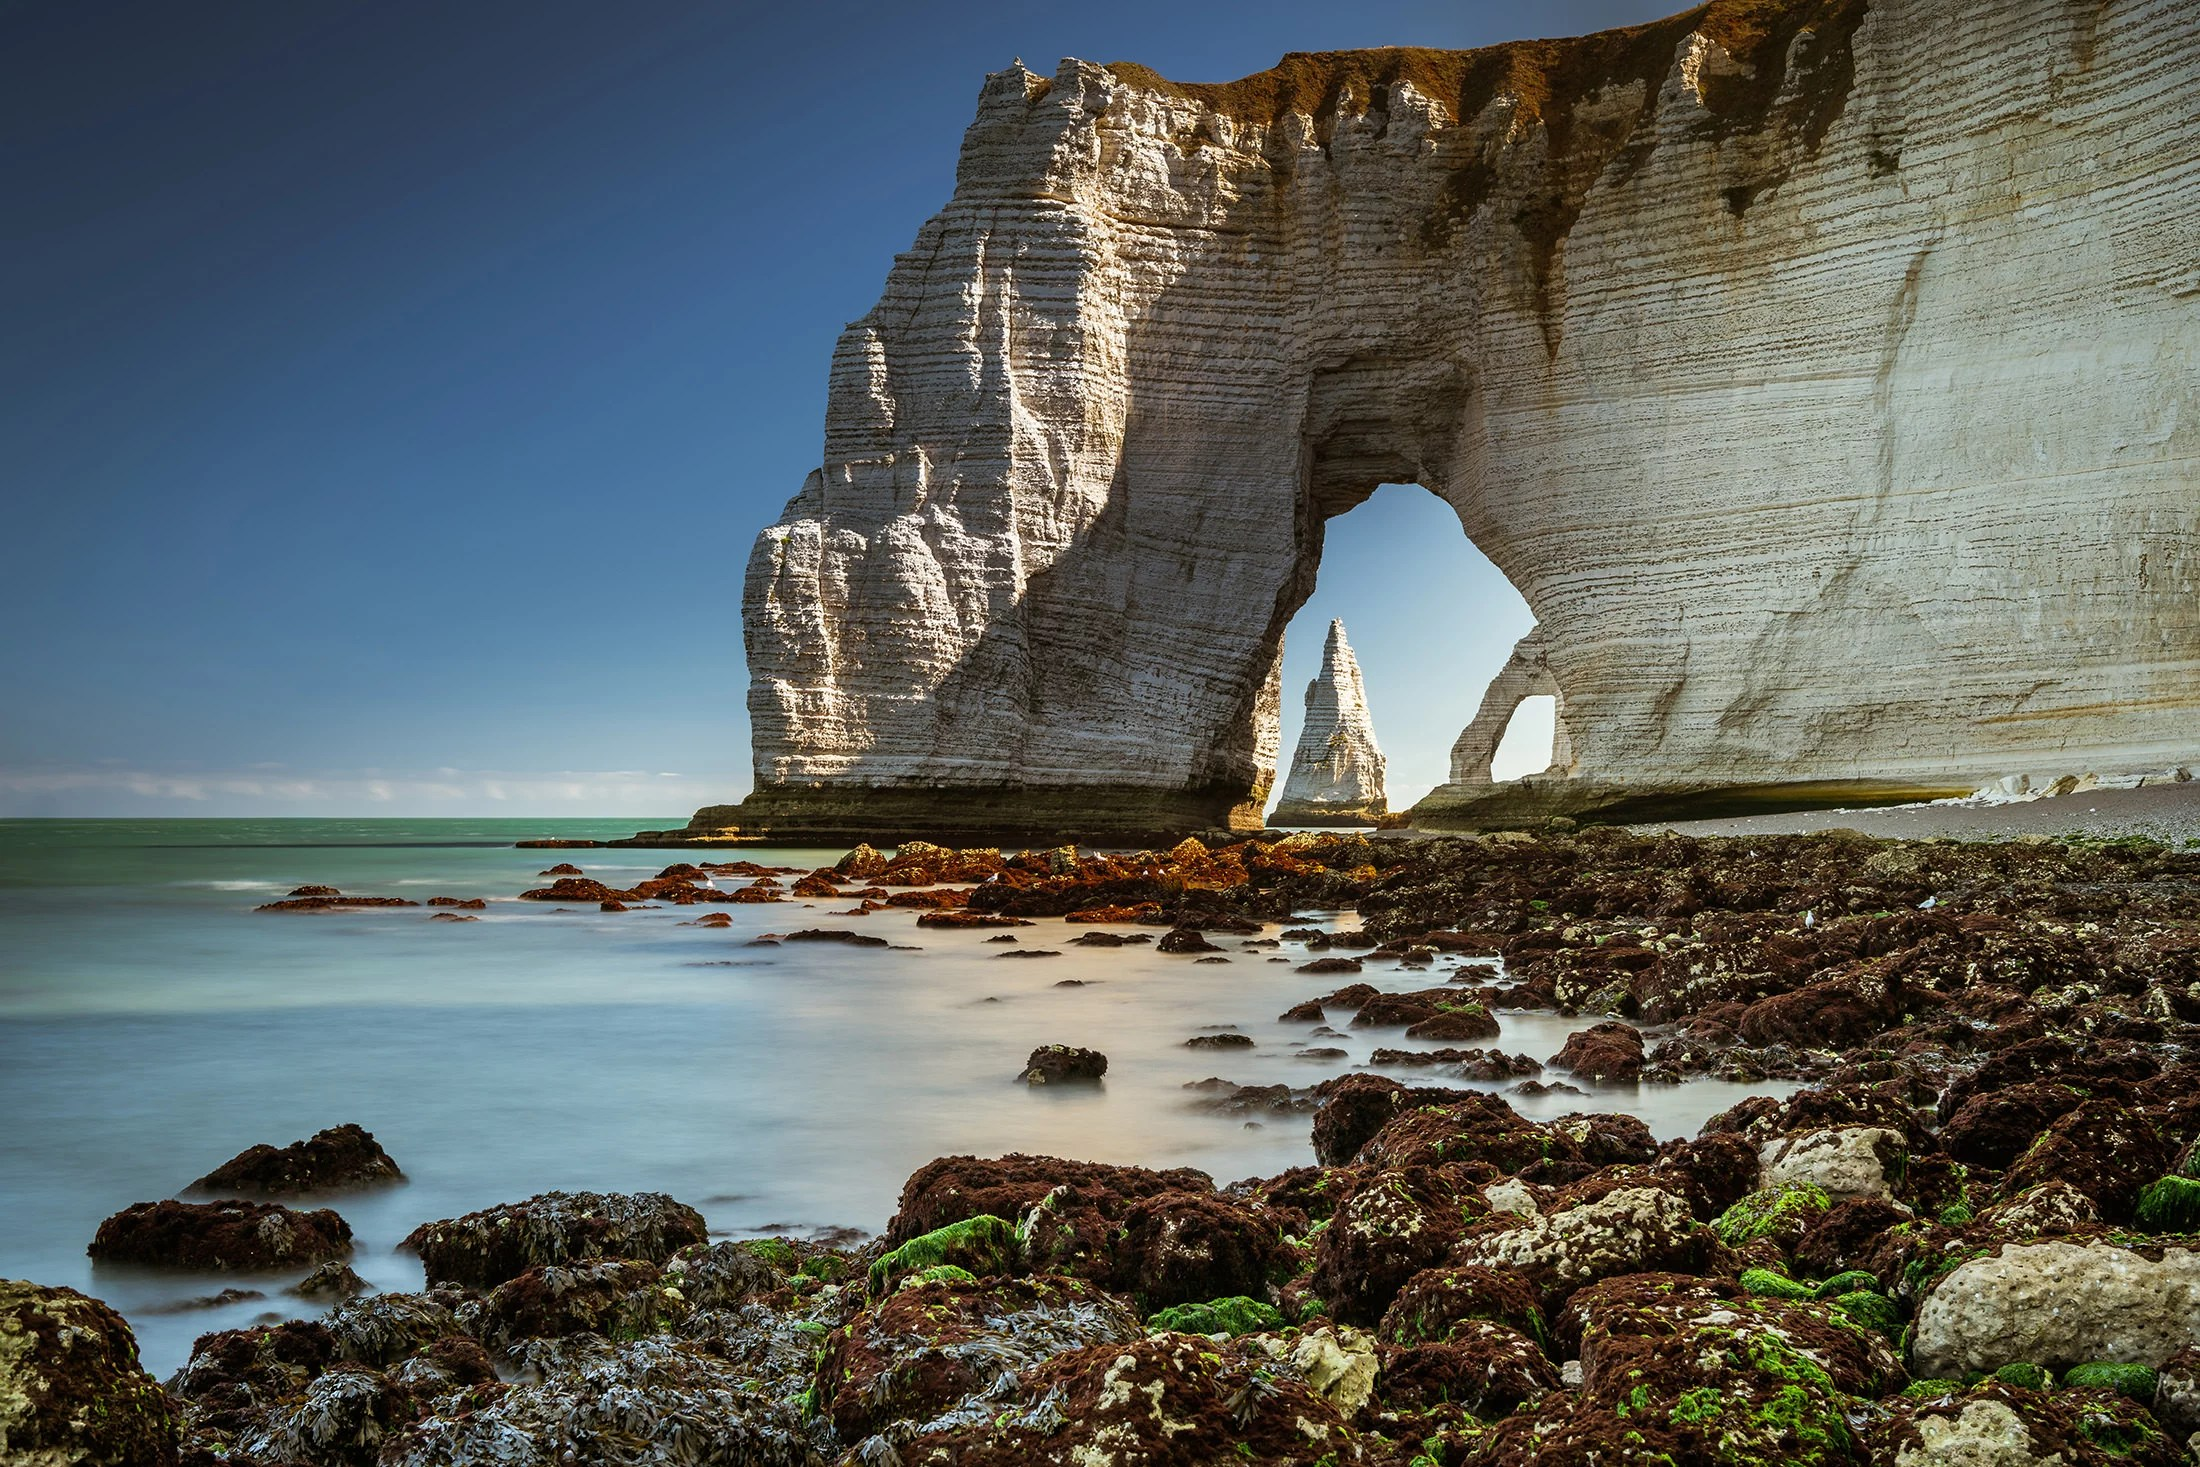 Two arches and a needle during low tide